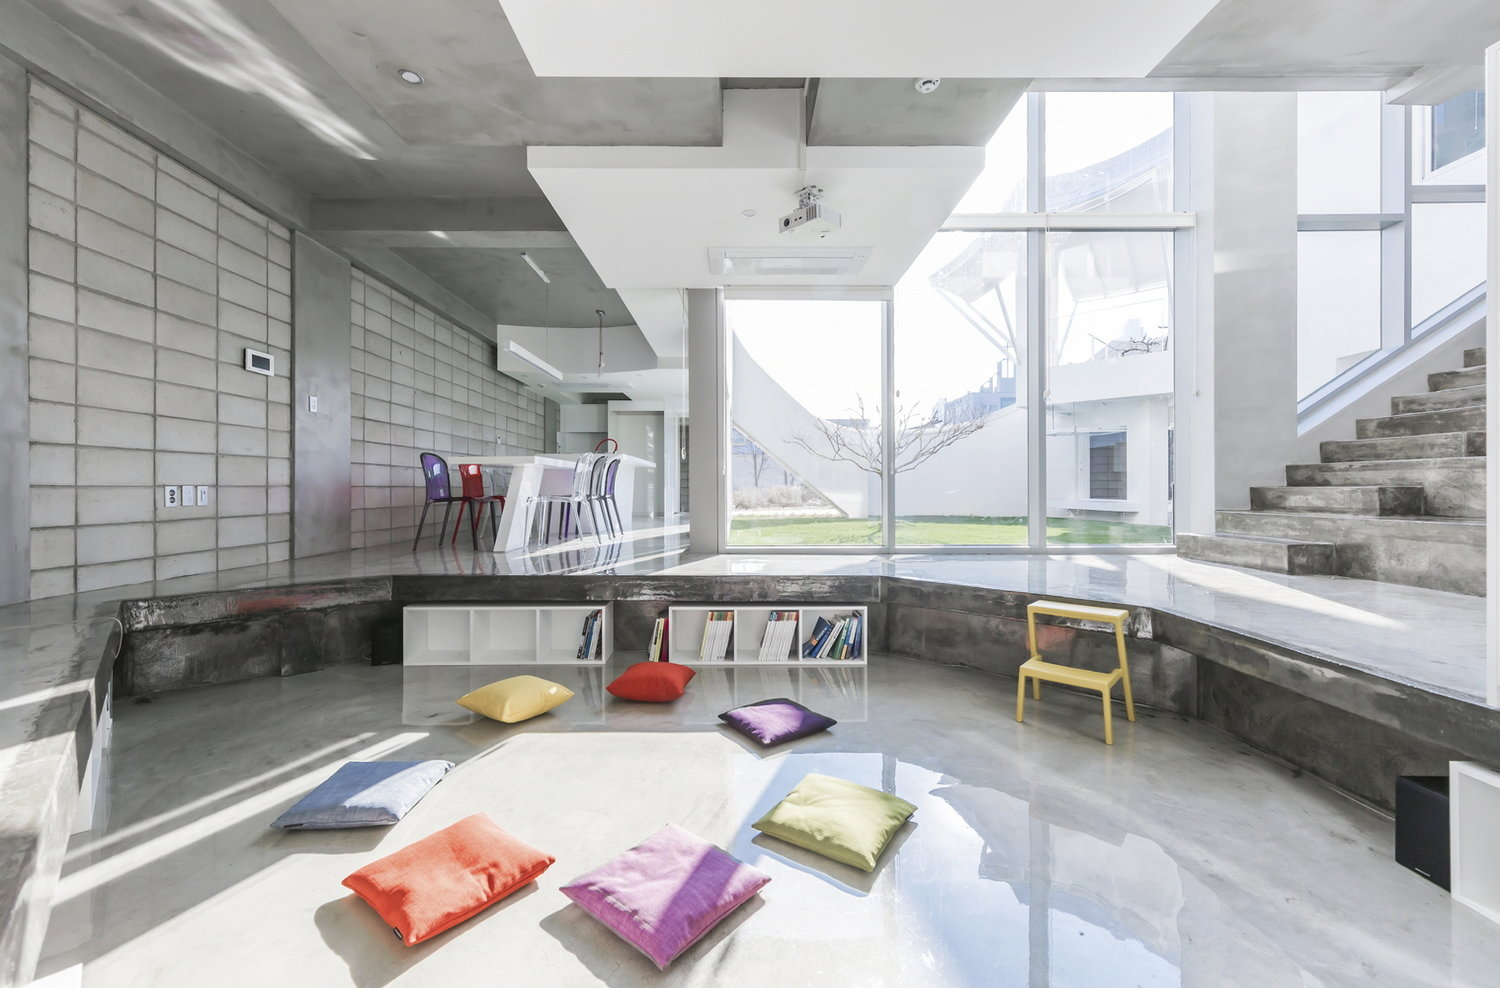 The interiors are between minimalist and industrial, with lots of concrete in decor, which is not only budget savvy but also very durable and modern